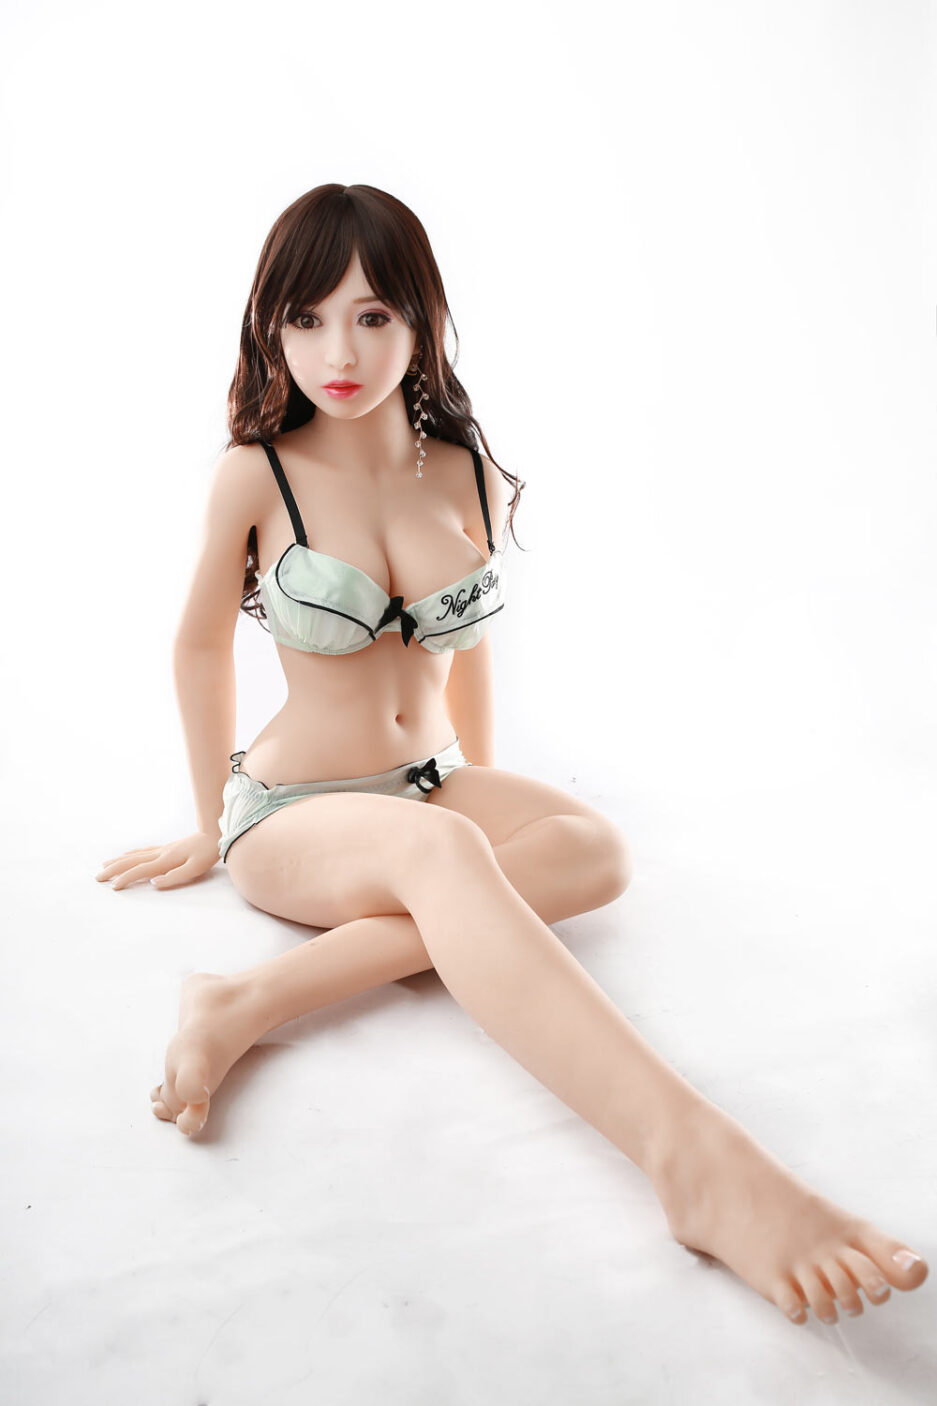 Mini sex doll with one foot on top of the other